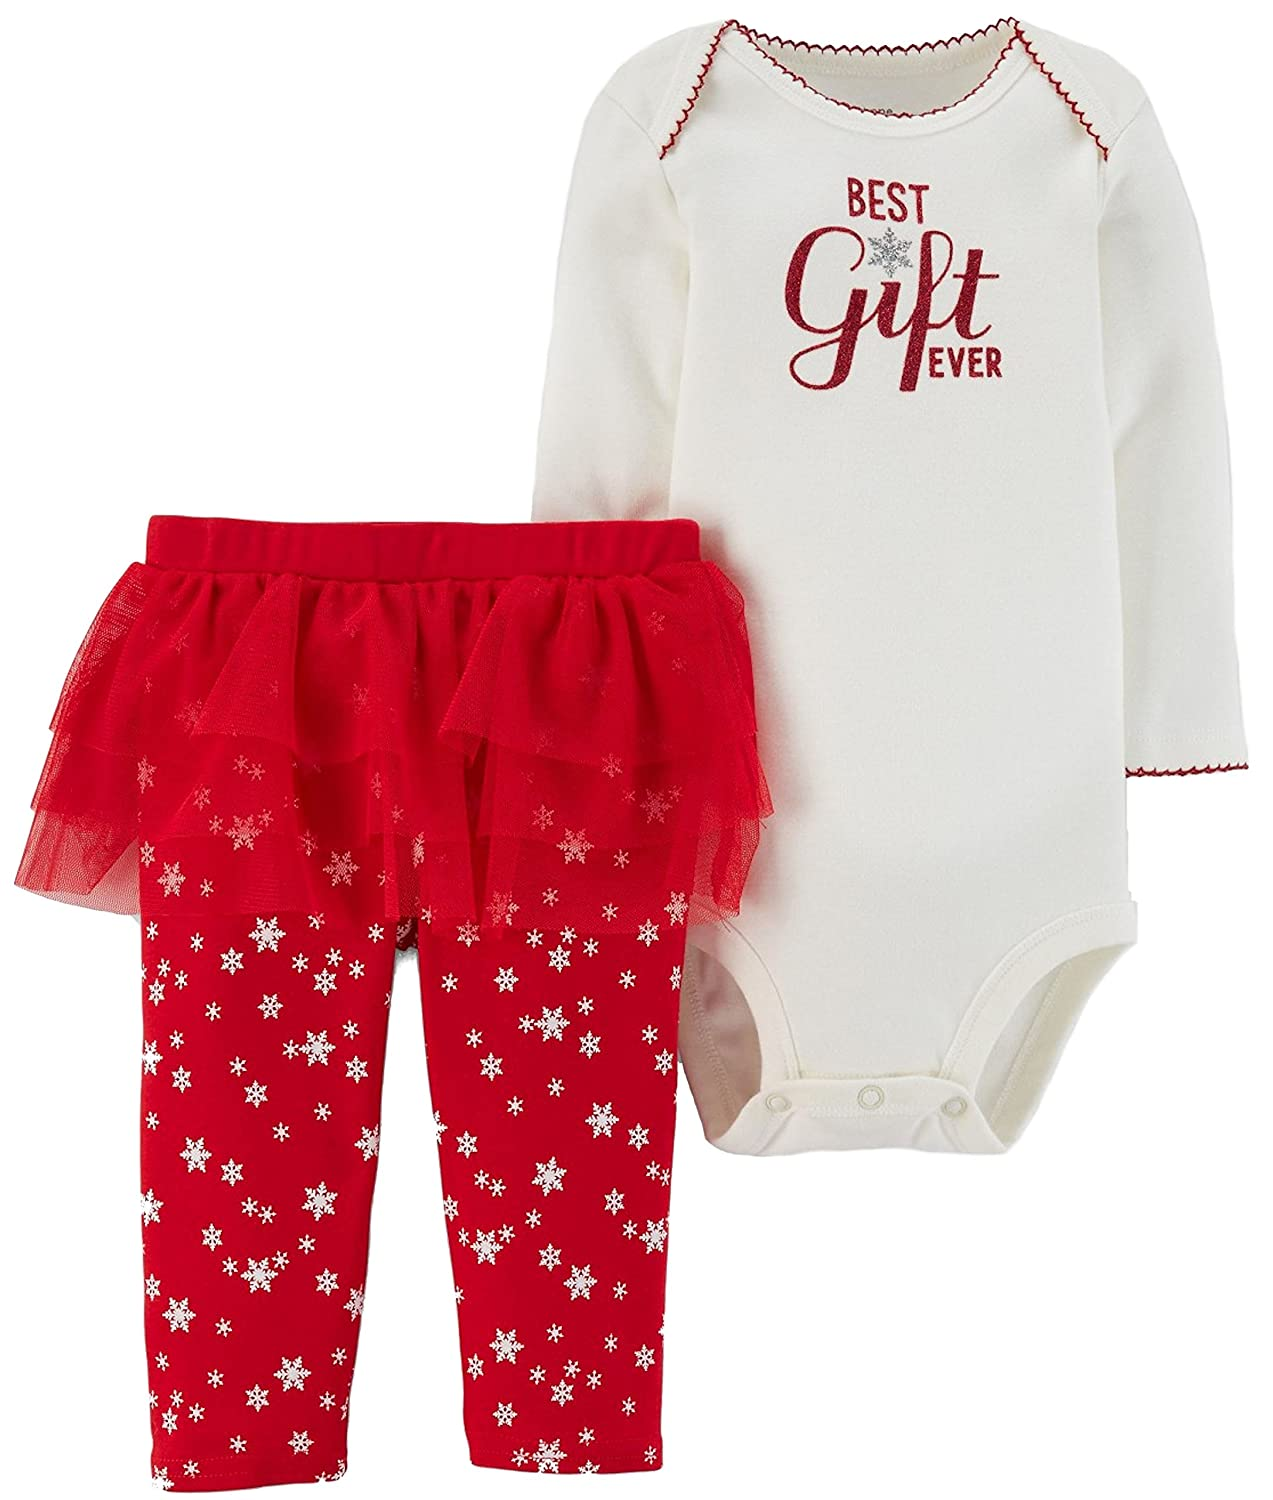 cd0fb83ad561 Carter's Just One you Baby Girls Greatest Gift Ever Bodysuit and Tutu  Leggings Set Cream/Red